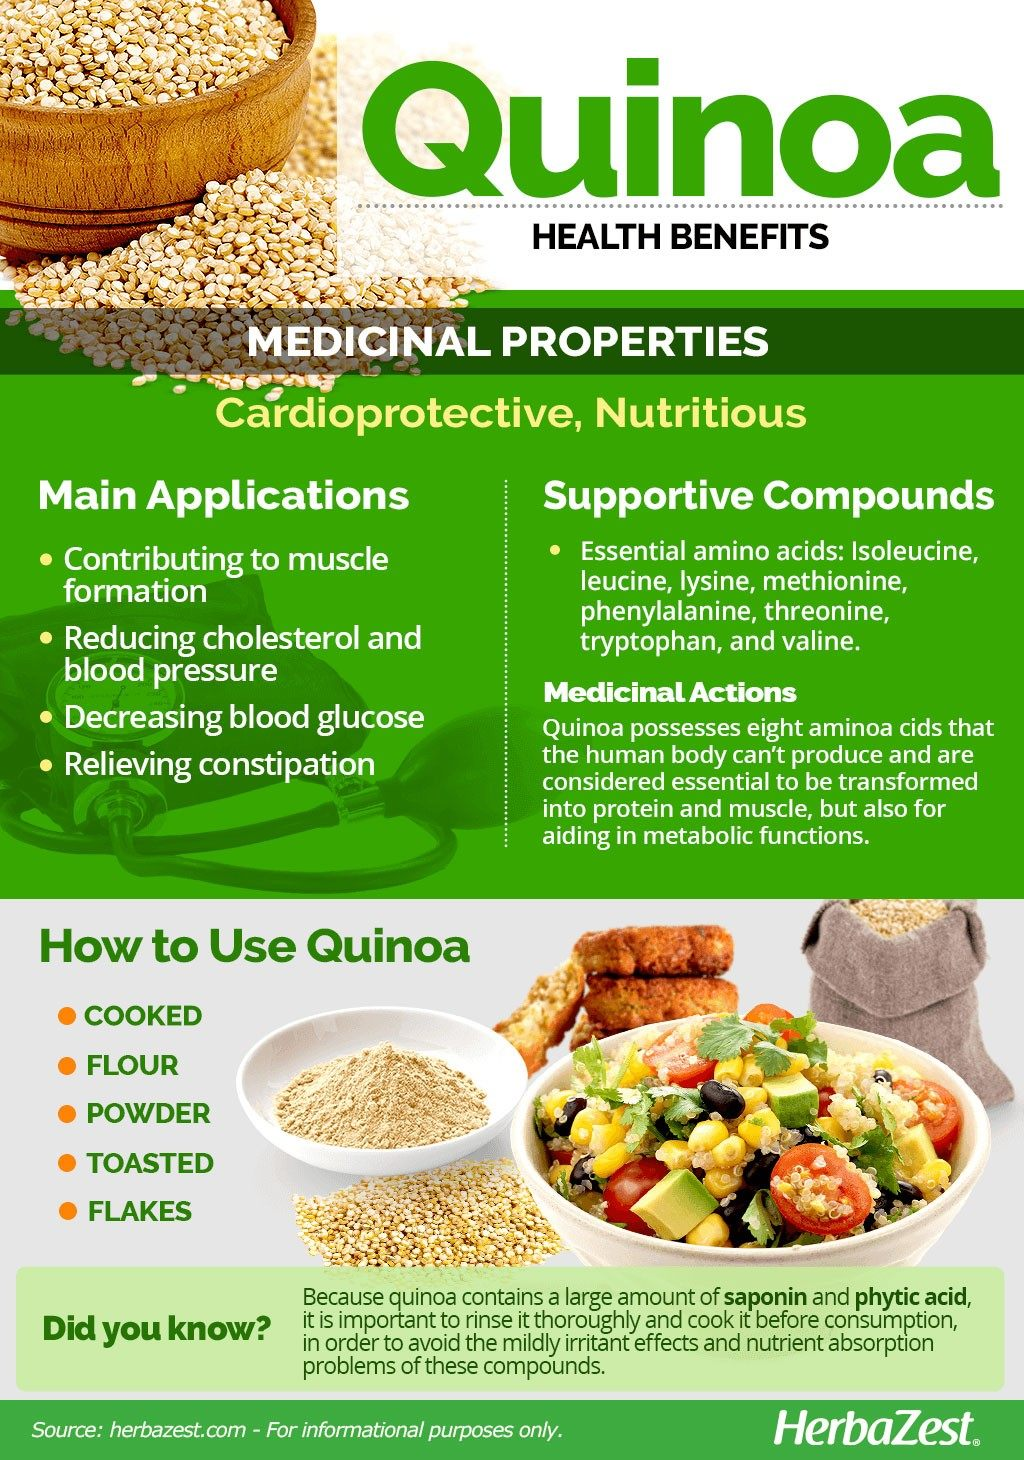 Quinoa for cholesterol